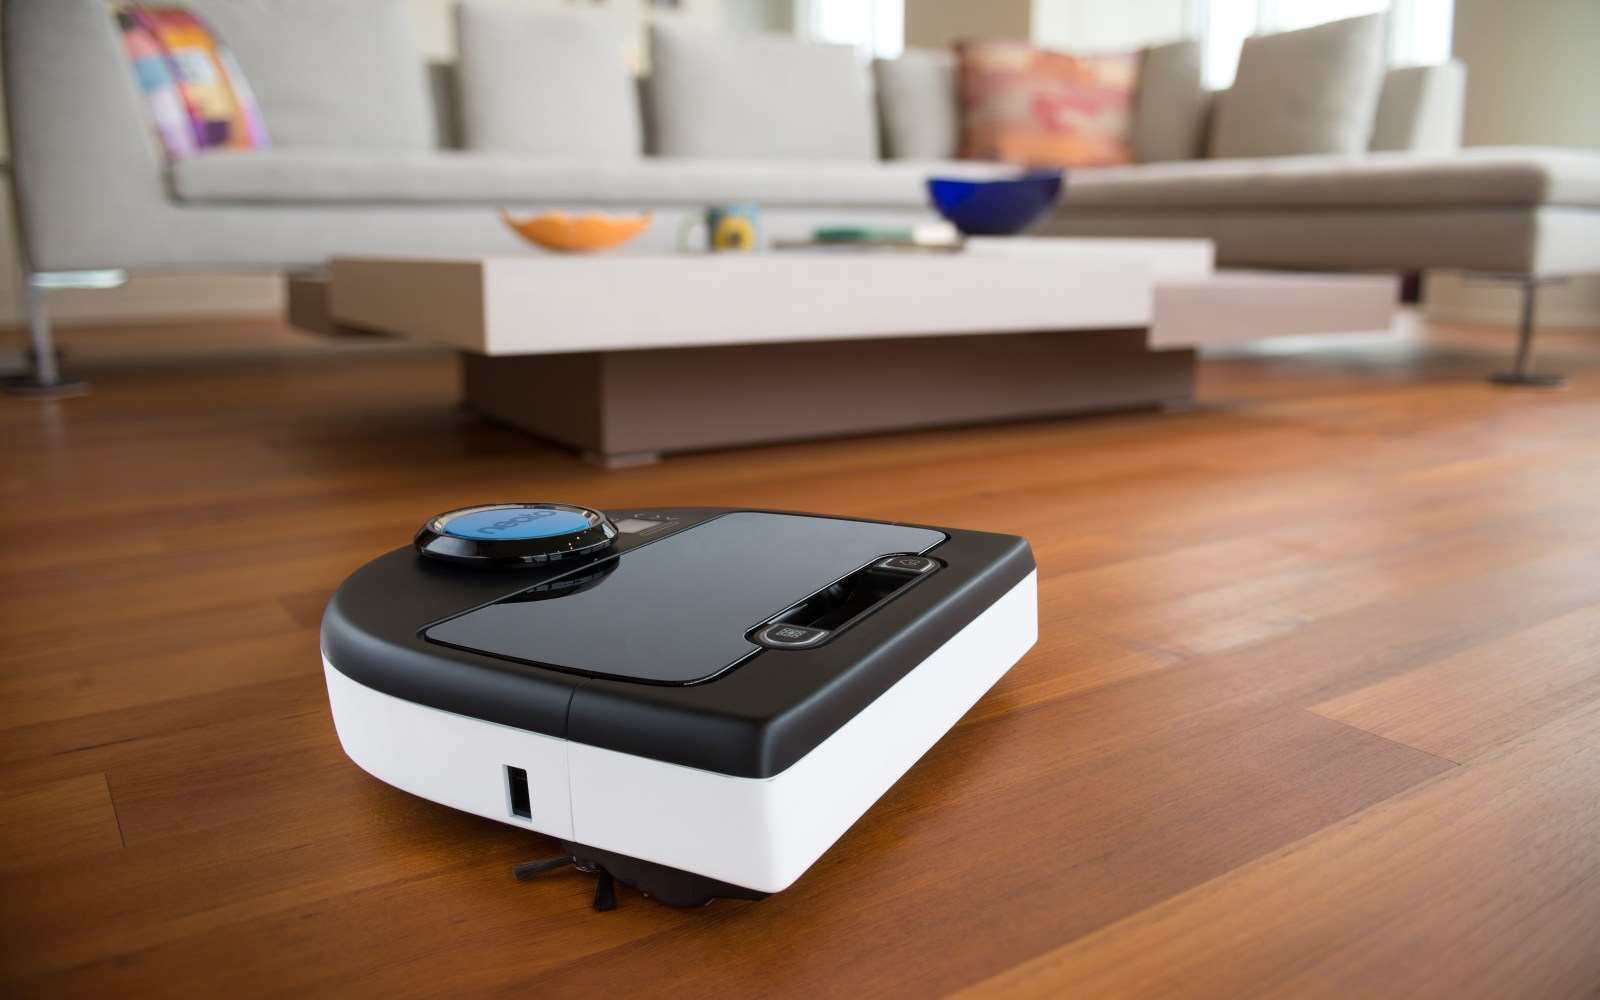 Neato's next gen robotic vacuums might be its quietest and best looking yet